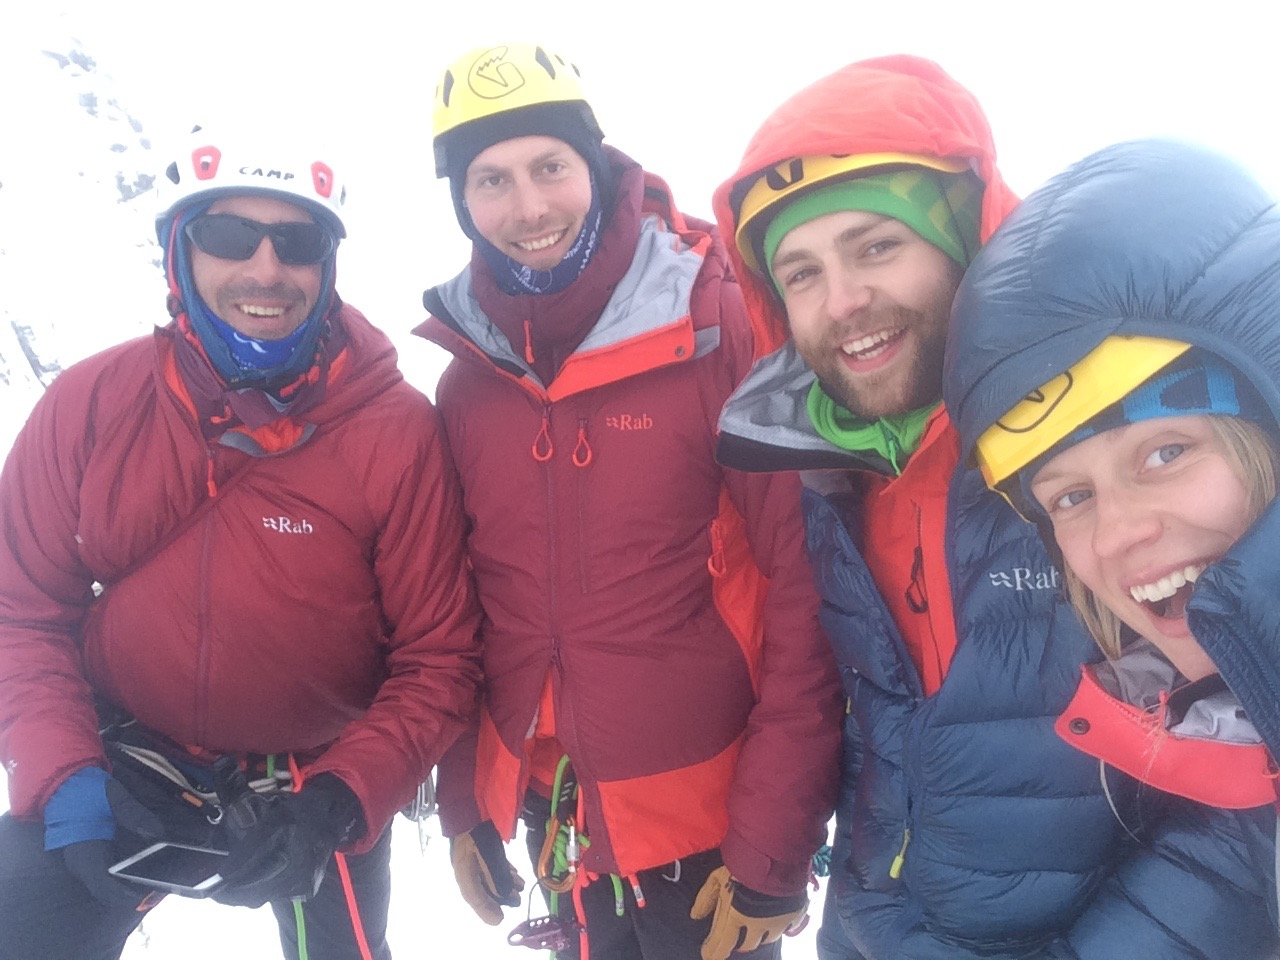 After the bike tour I met up with the ALL STAR RAB folks to do some winter climbing! Fabrizio Zangrilli, Jon Fredrick, Greg Boswell and I.